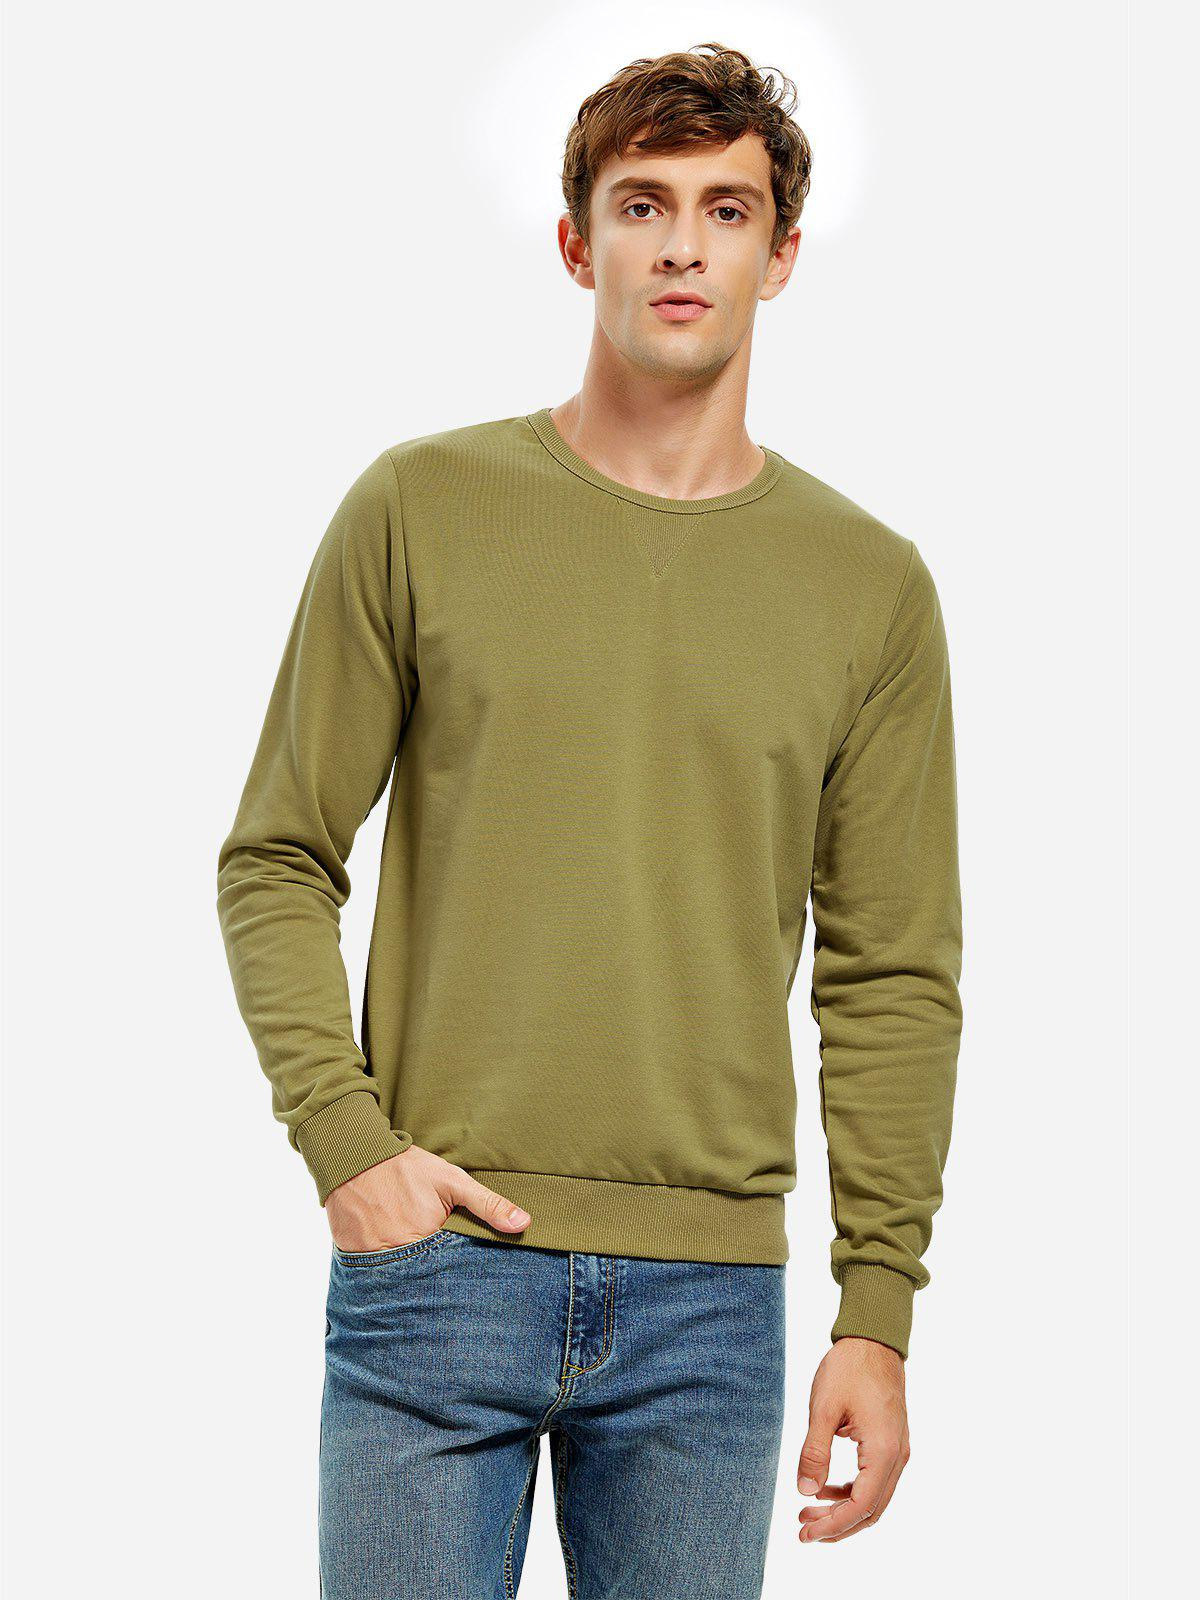 Sweat-Shirt à Col Rond RAL6005 Vert Mousse 3XL